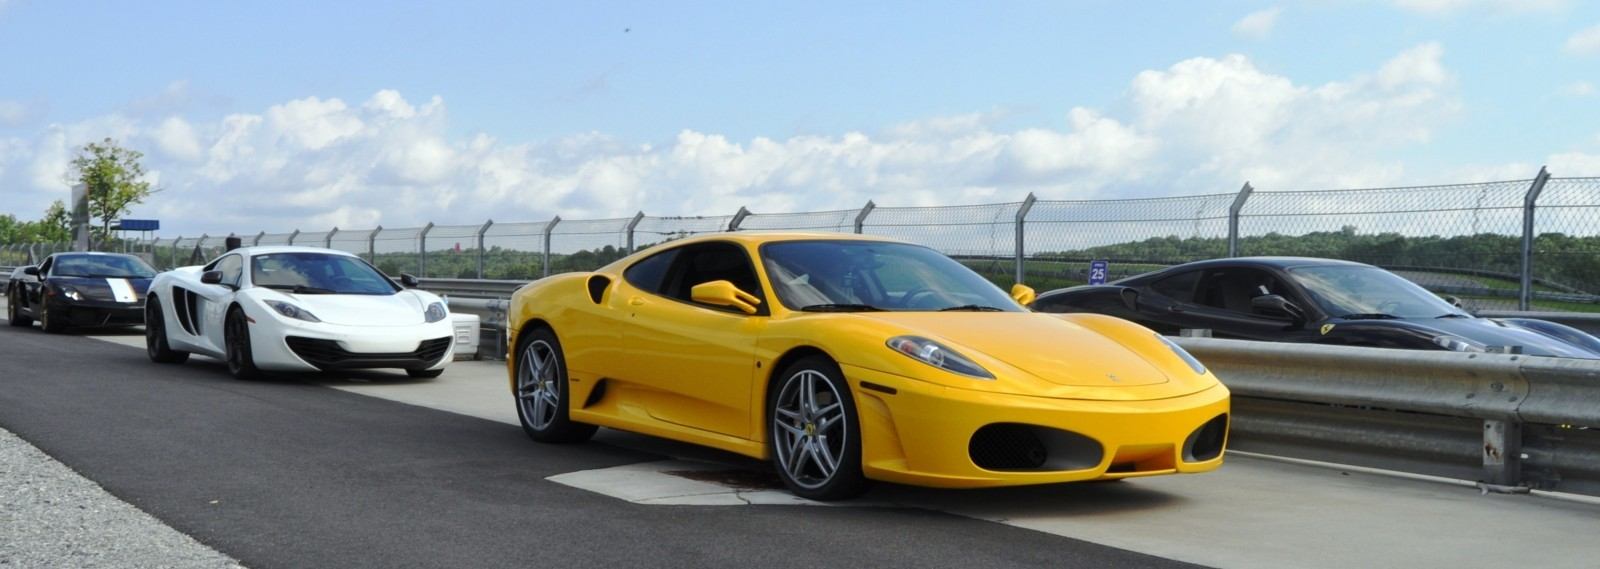 Beating the Supercar Paradox - 2007 Ferrari F430 at Velocity Motorsports Supercar Track Drive 11